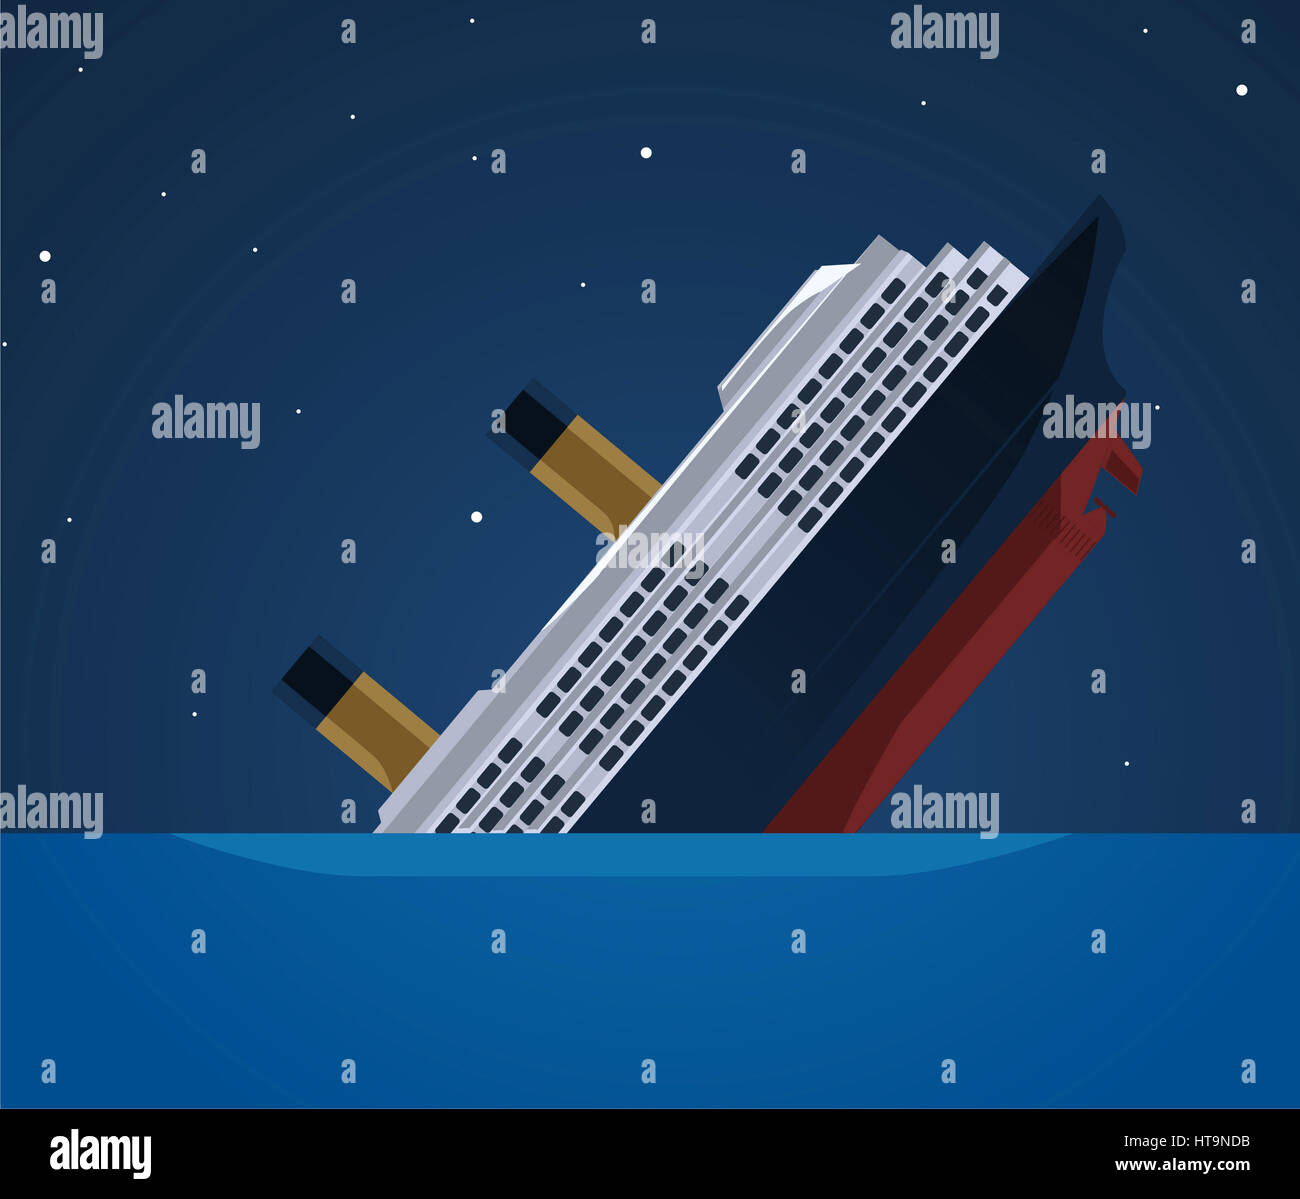 Sinking Ship Illustration Stock Photo